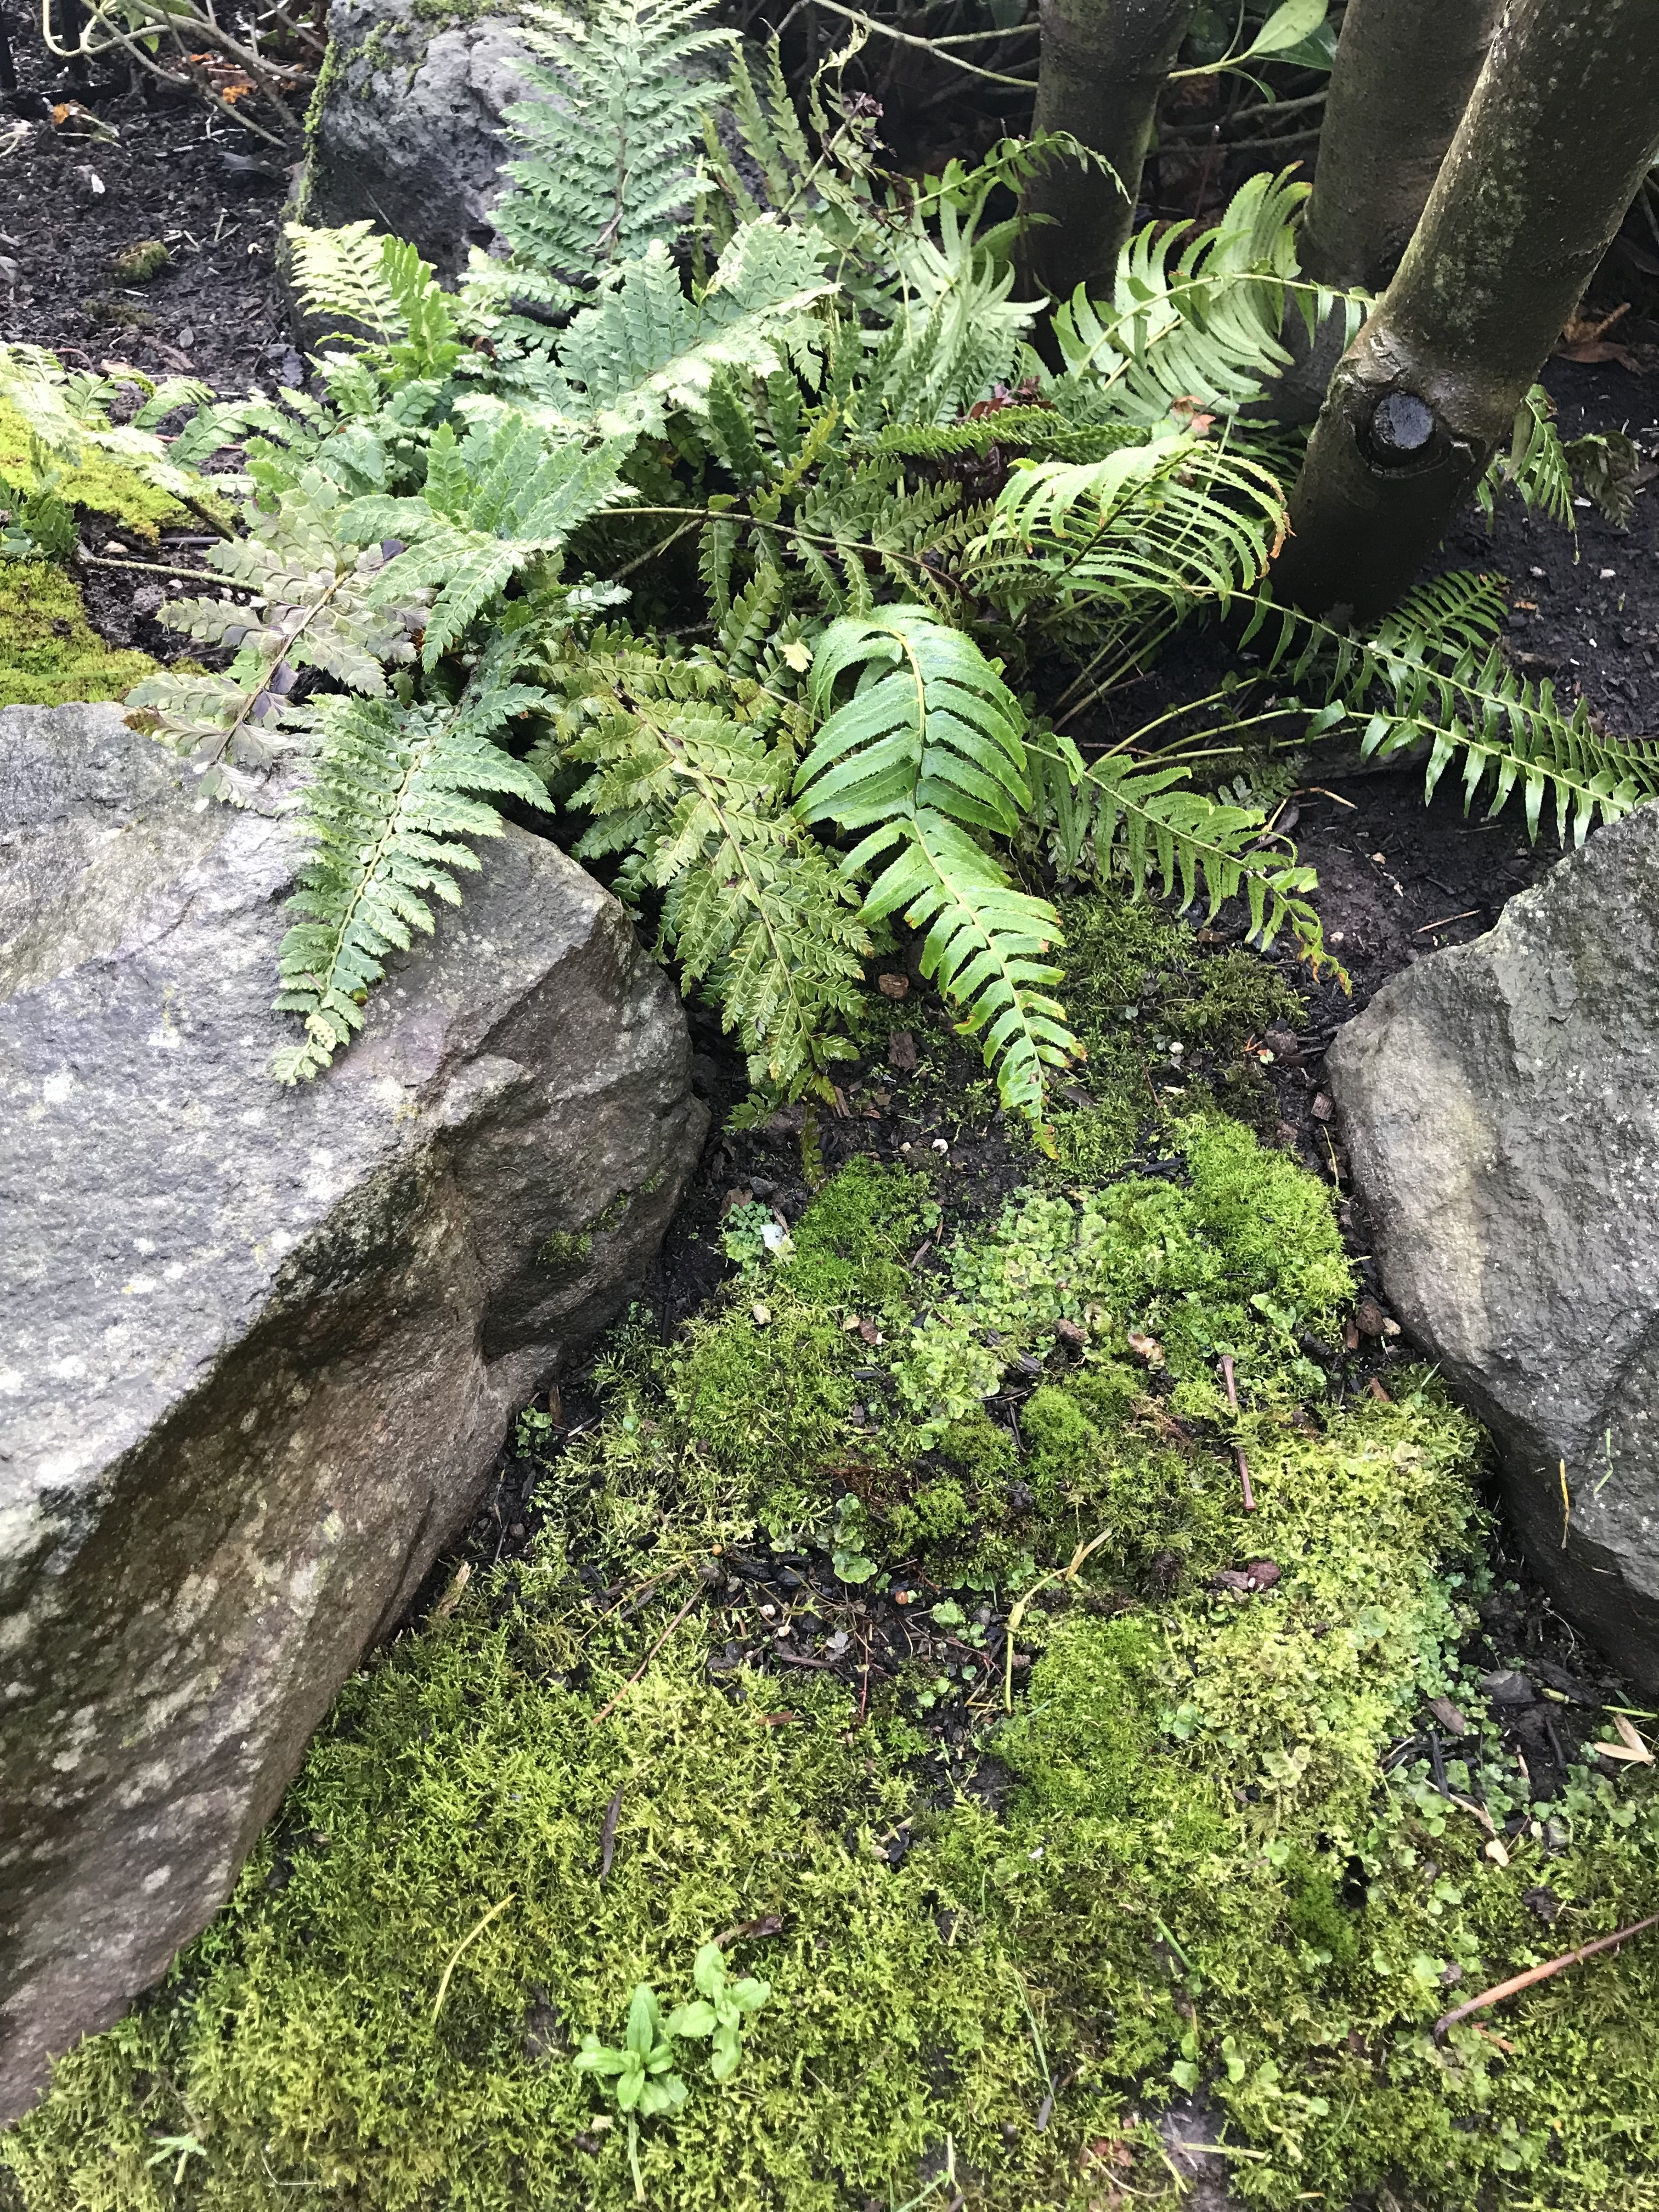 Ferns with rocks and moss